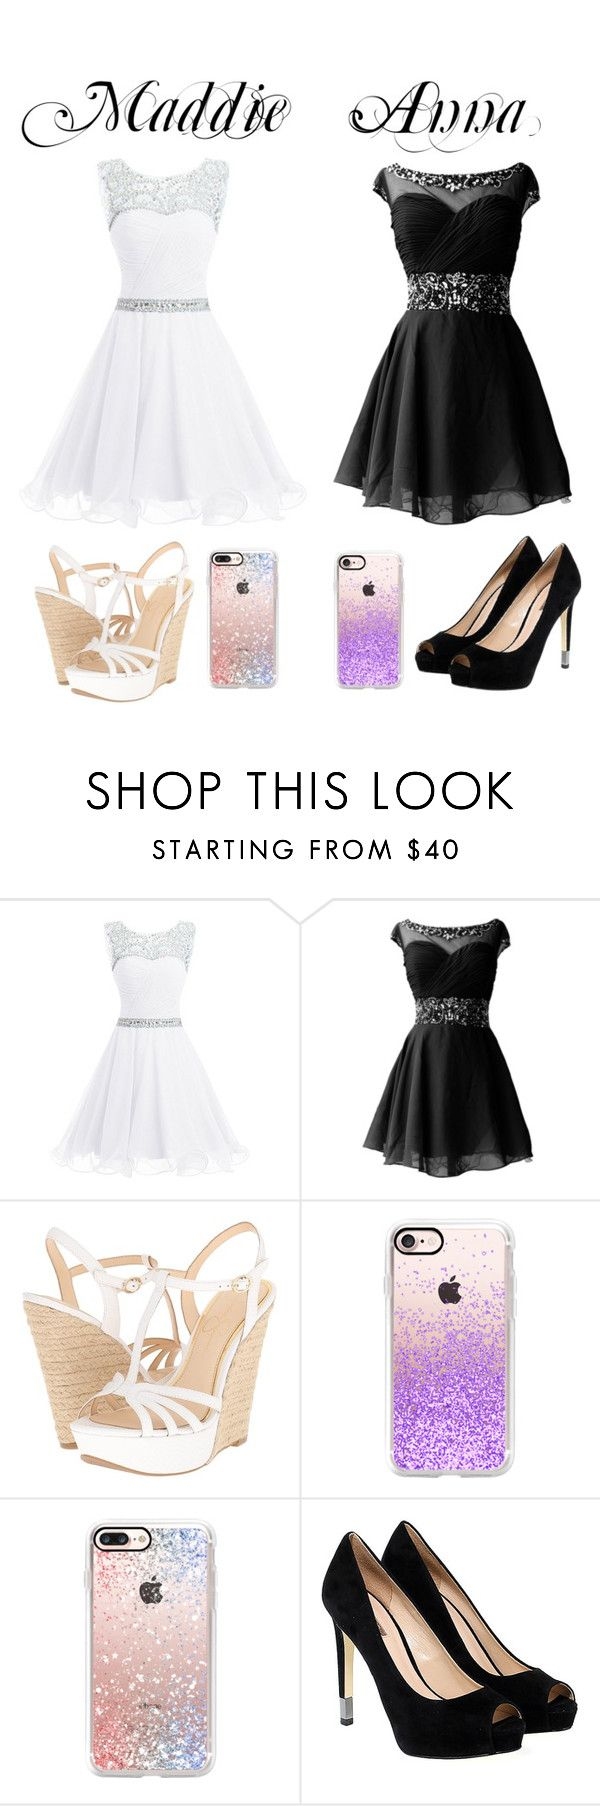 """""""BFFS"""" by annawell-1 ❤ liked on Polyvore featuring Jessica Simpson, Casetify and GUESS"""